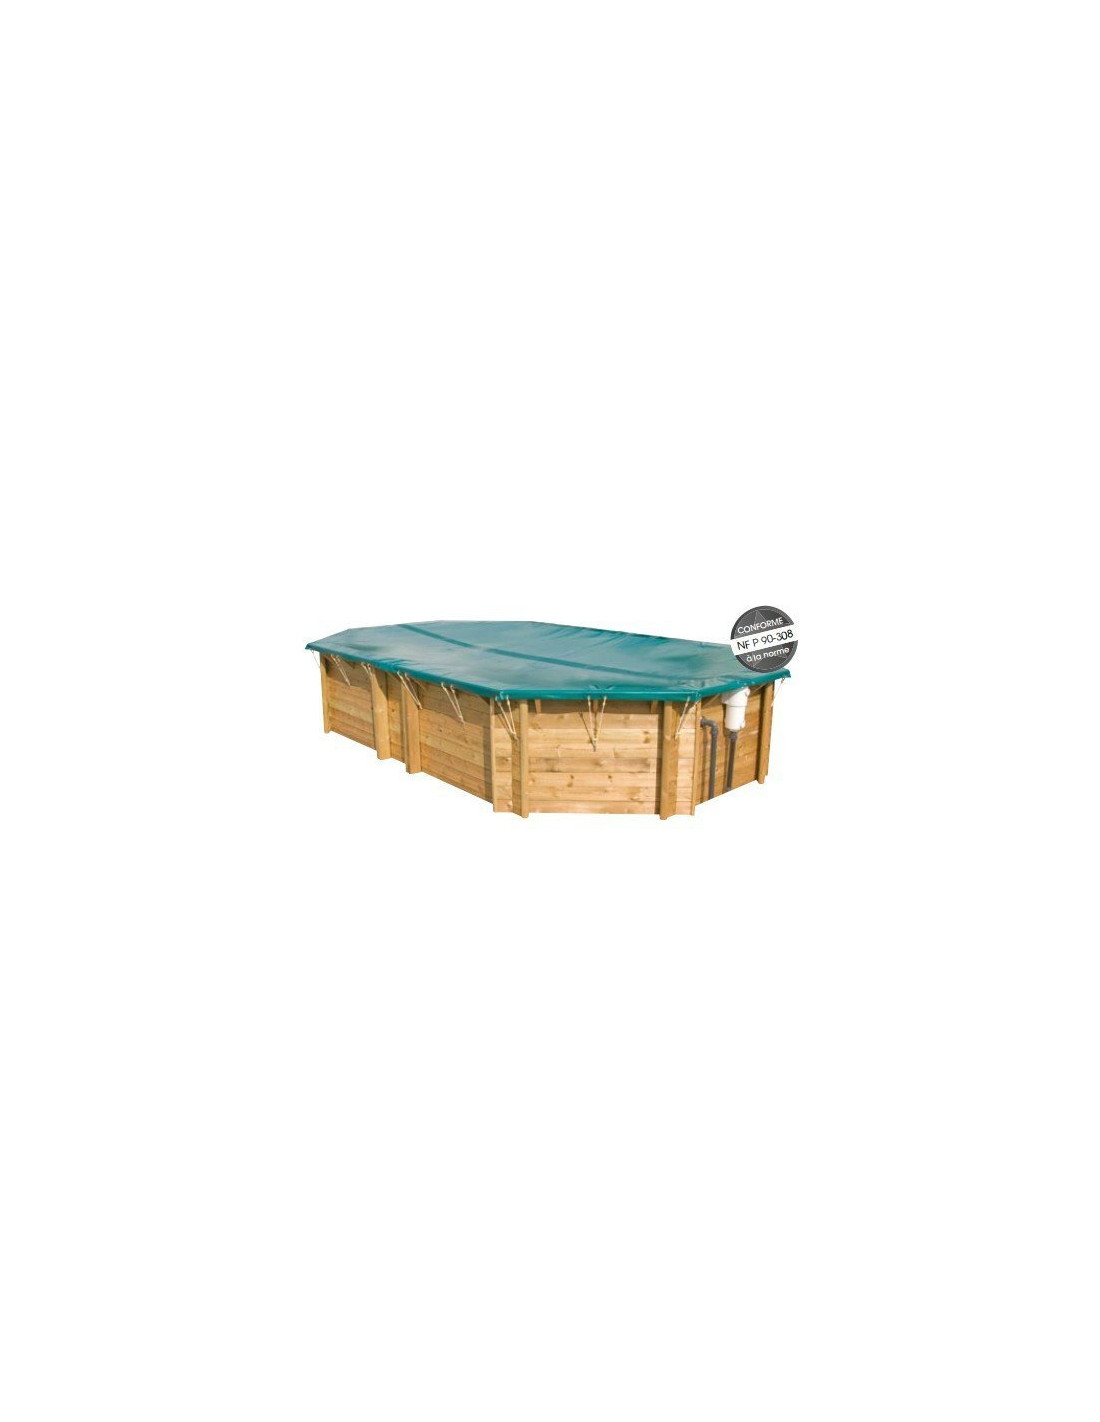 B che hivernage piscine hors sol procopi cerland home for Baches piscine hors sol